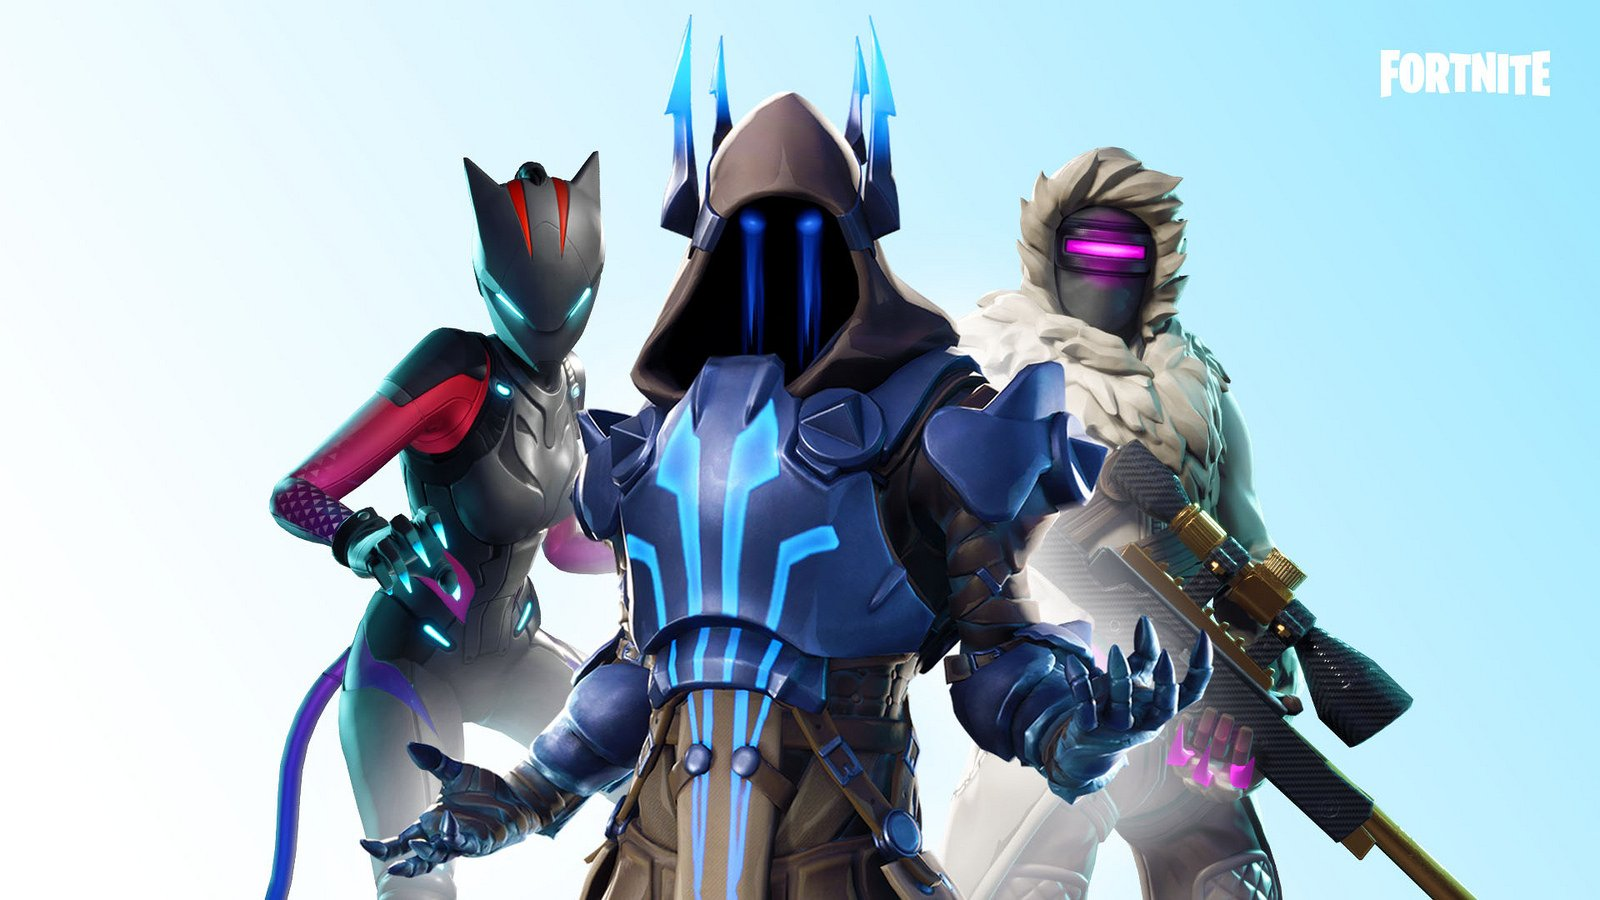 Unlock Zenith And Lynx Outfit Upgrades In Fortnite Allgamers